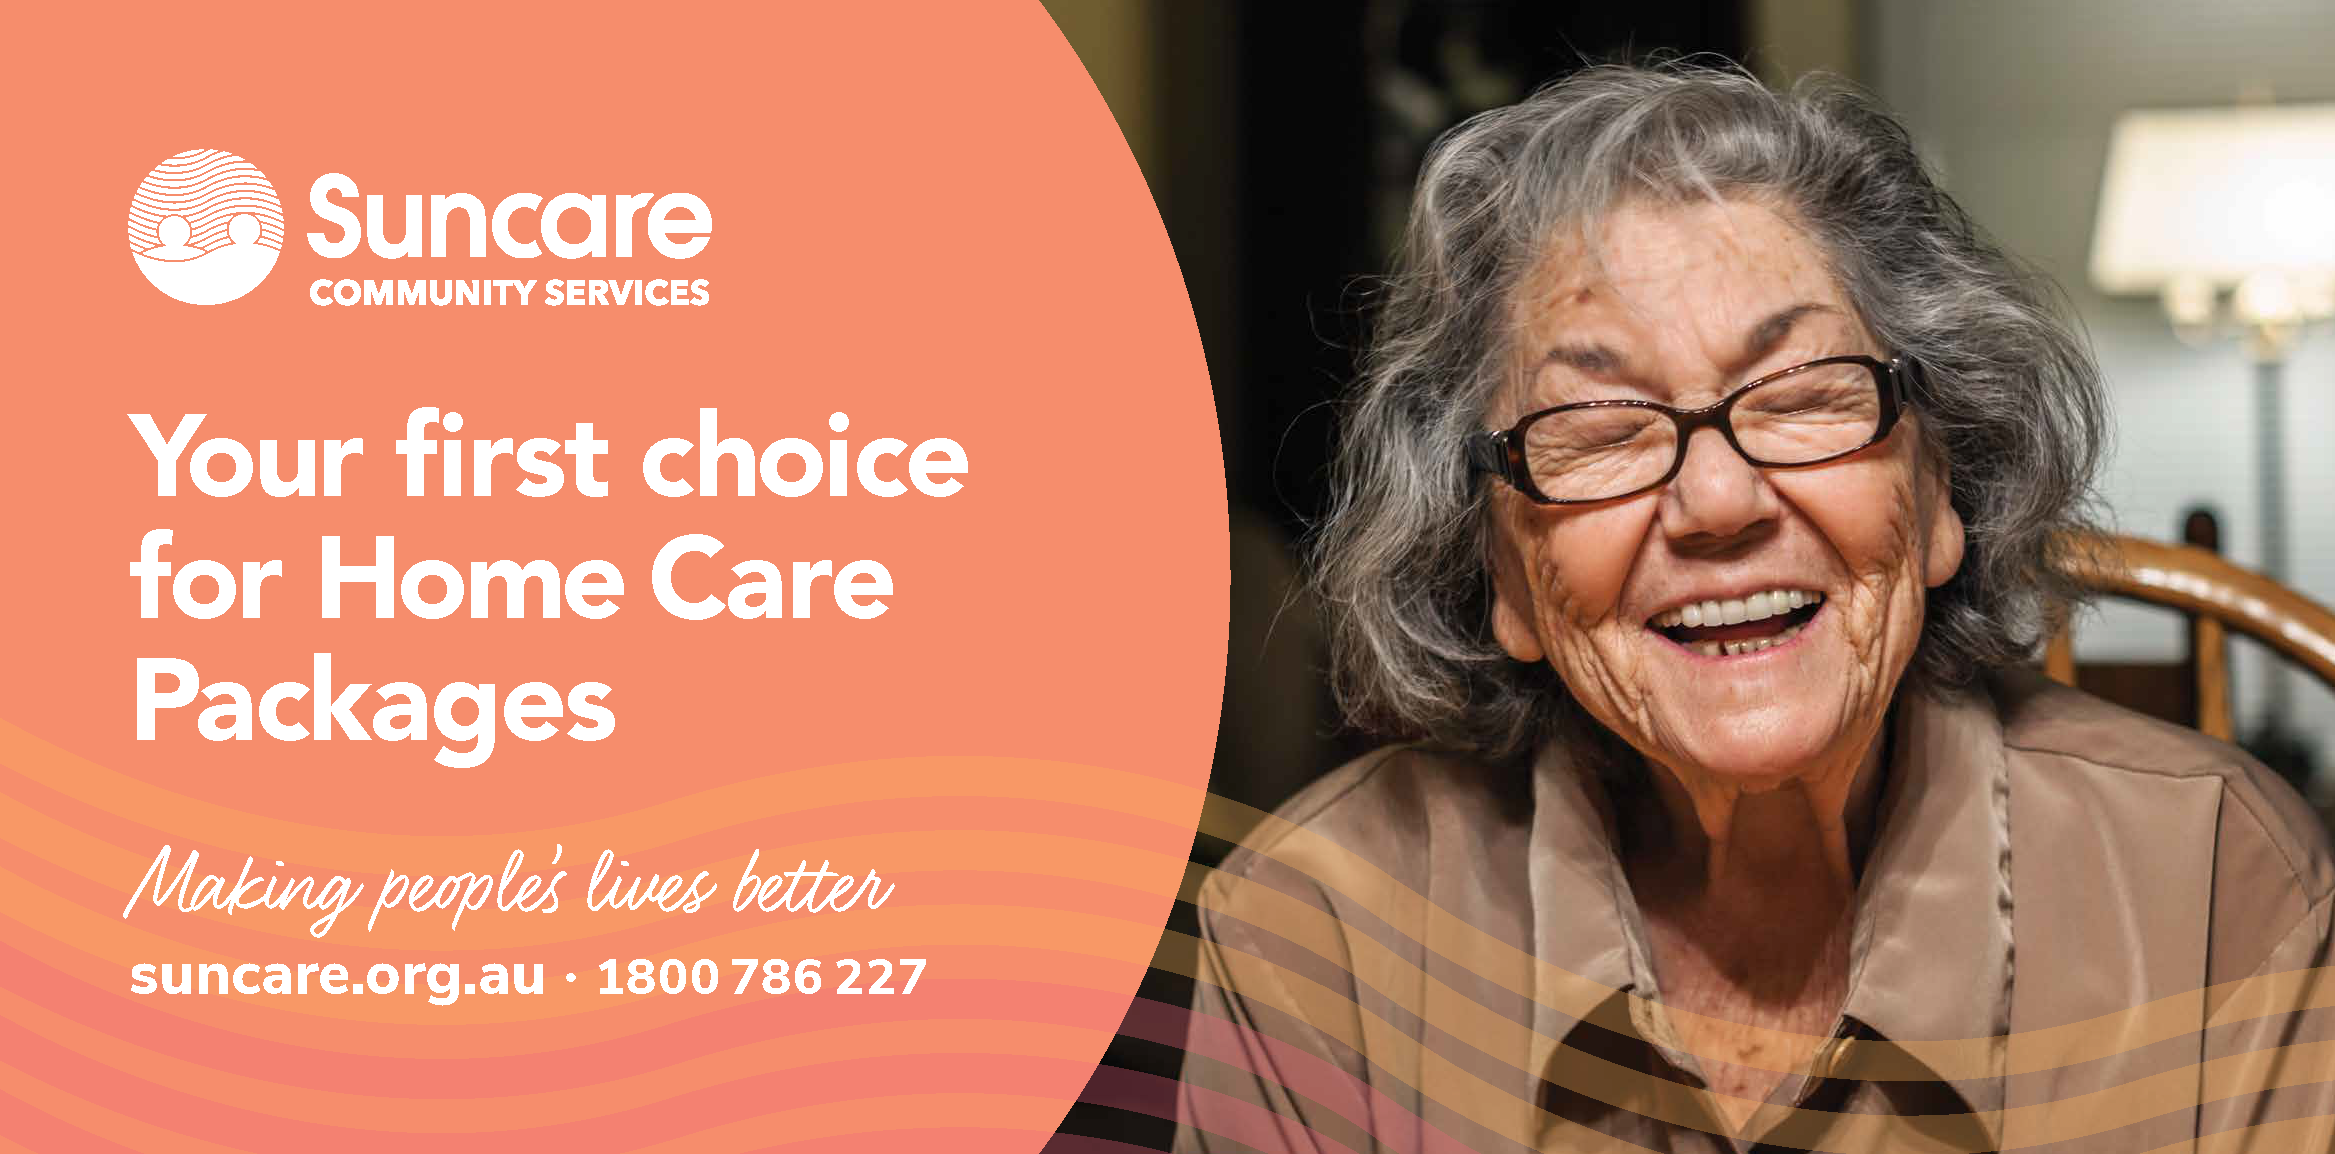 Suncare Community Services – Bundaberg